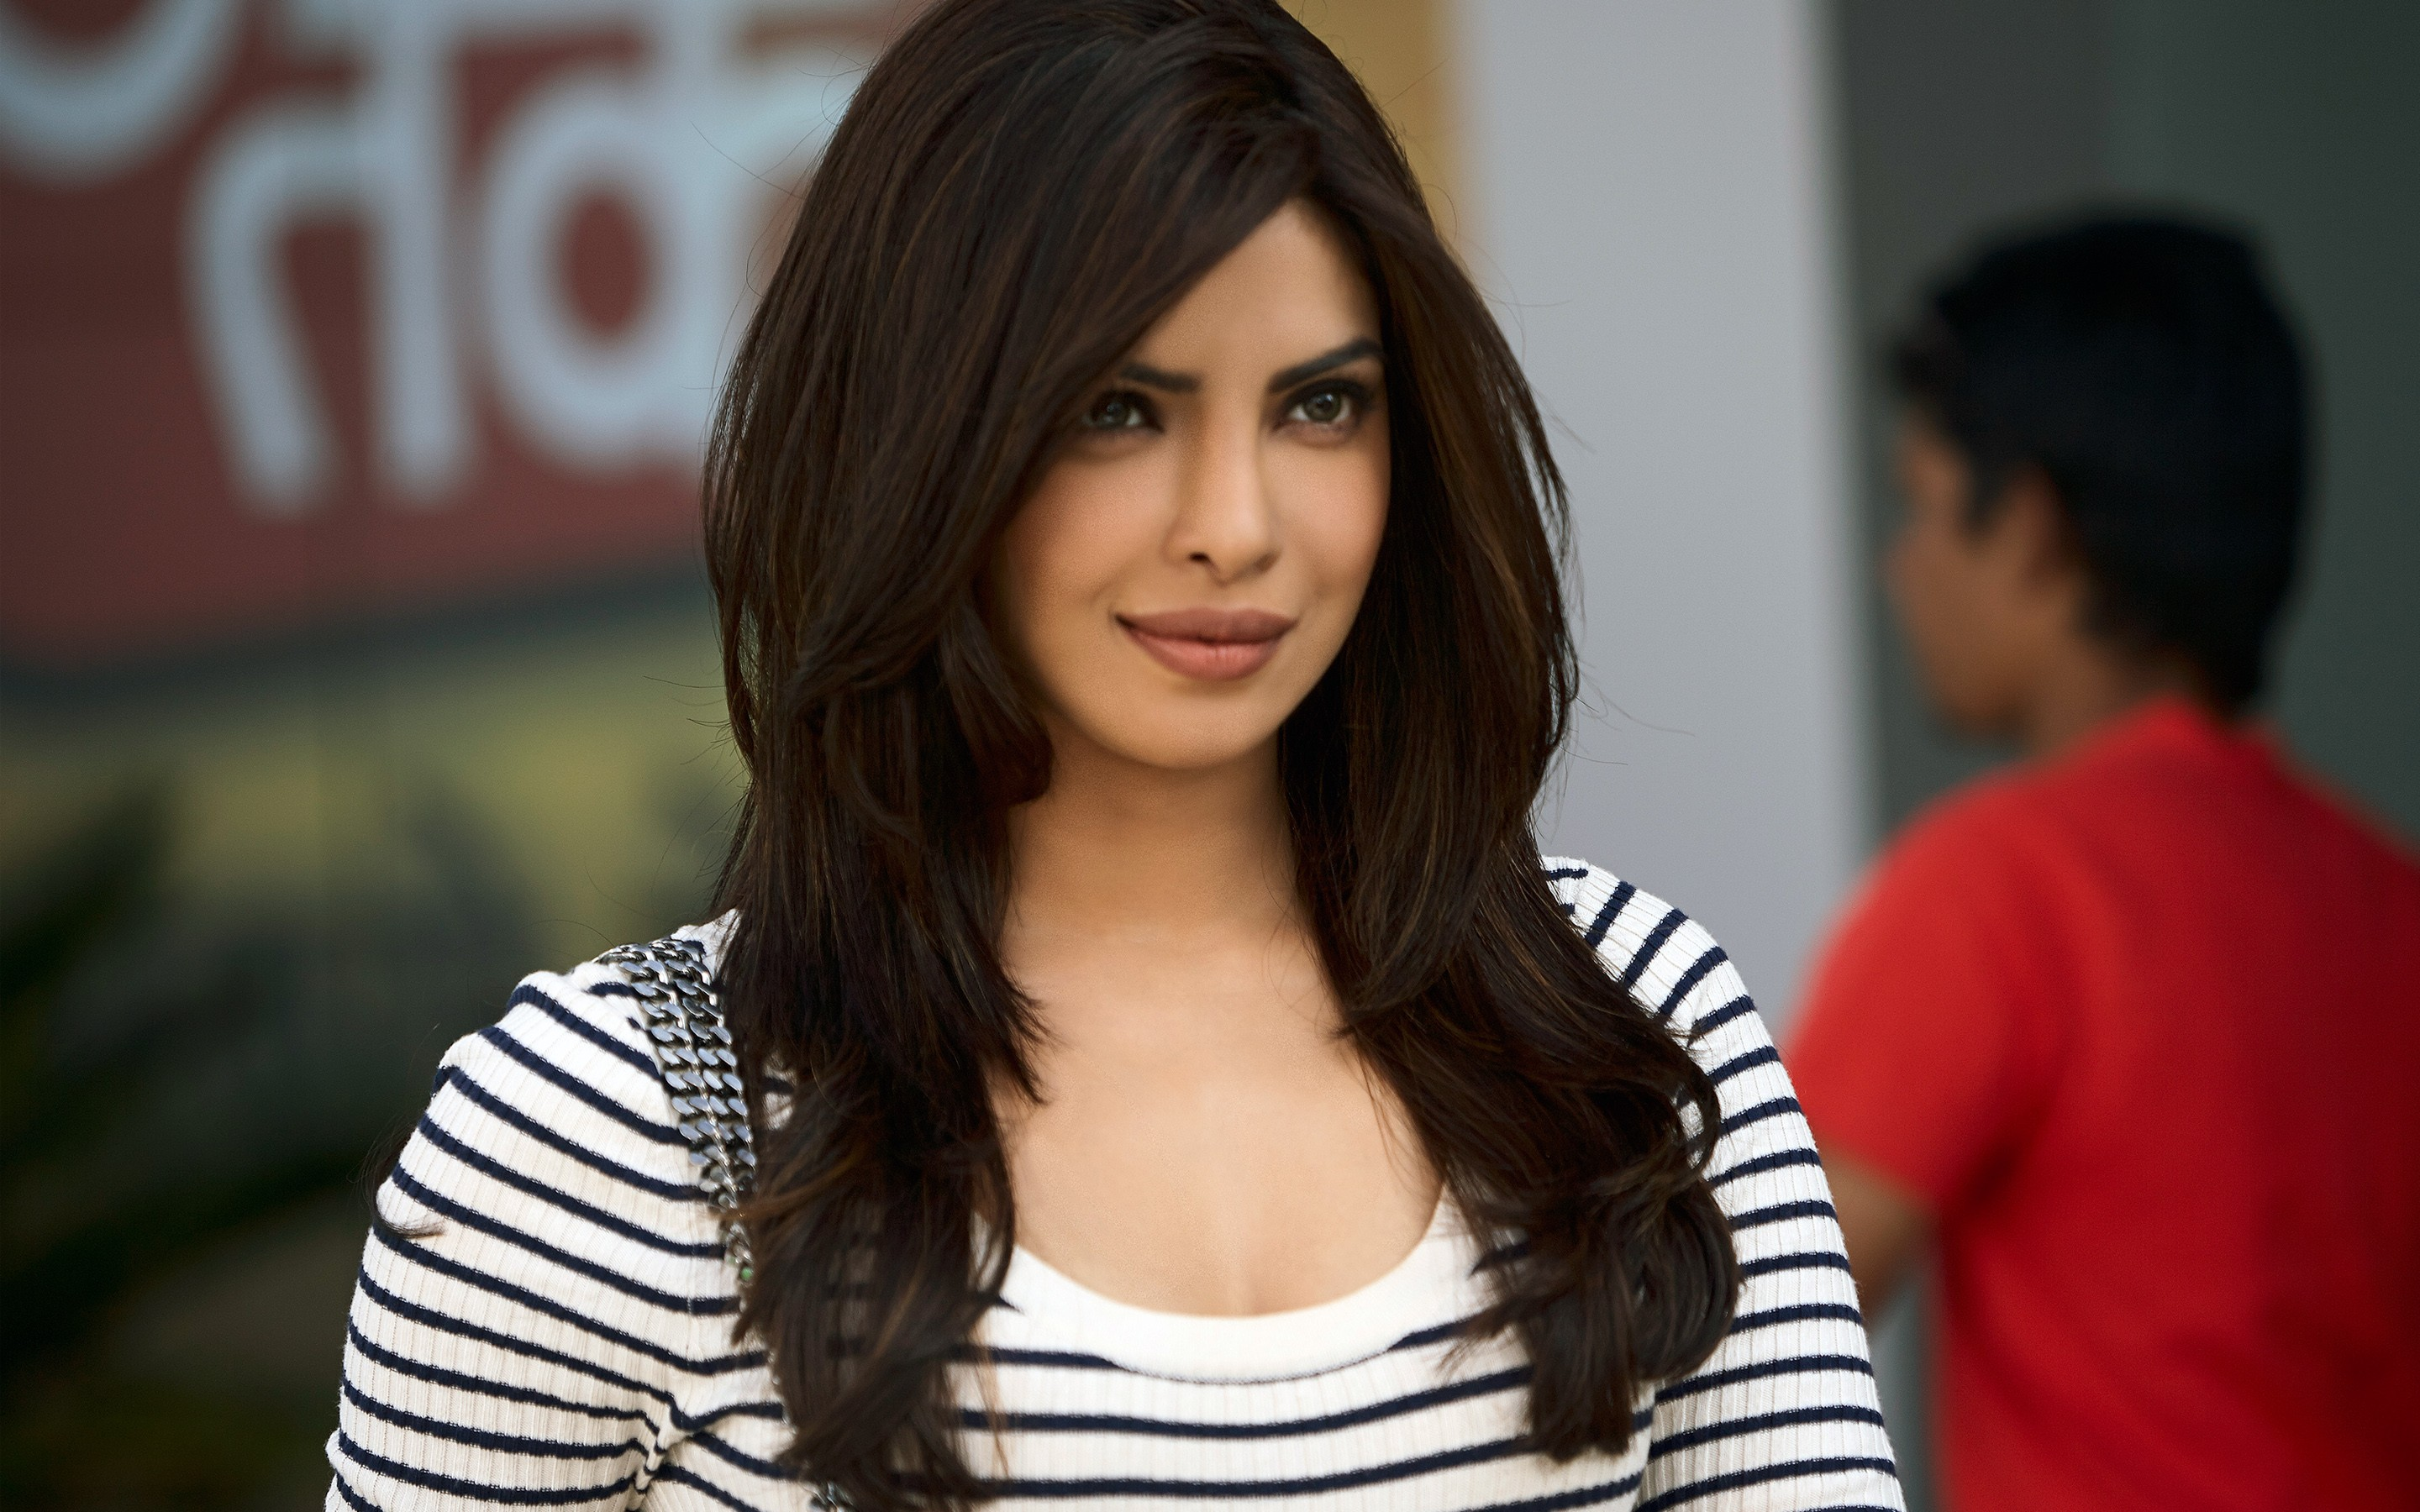 Desktop Priyanka Chopra Beautiful Still Hd Mobile Free Background Wallpapper